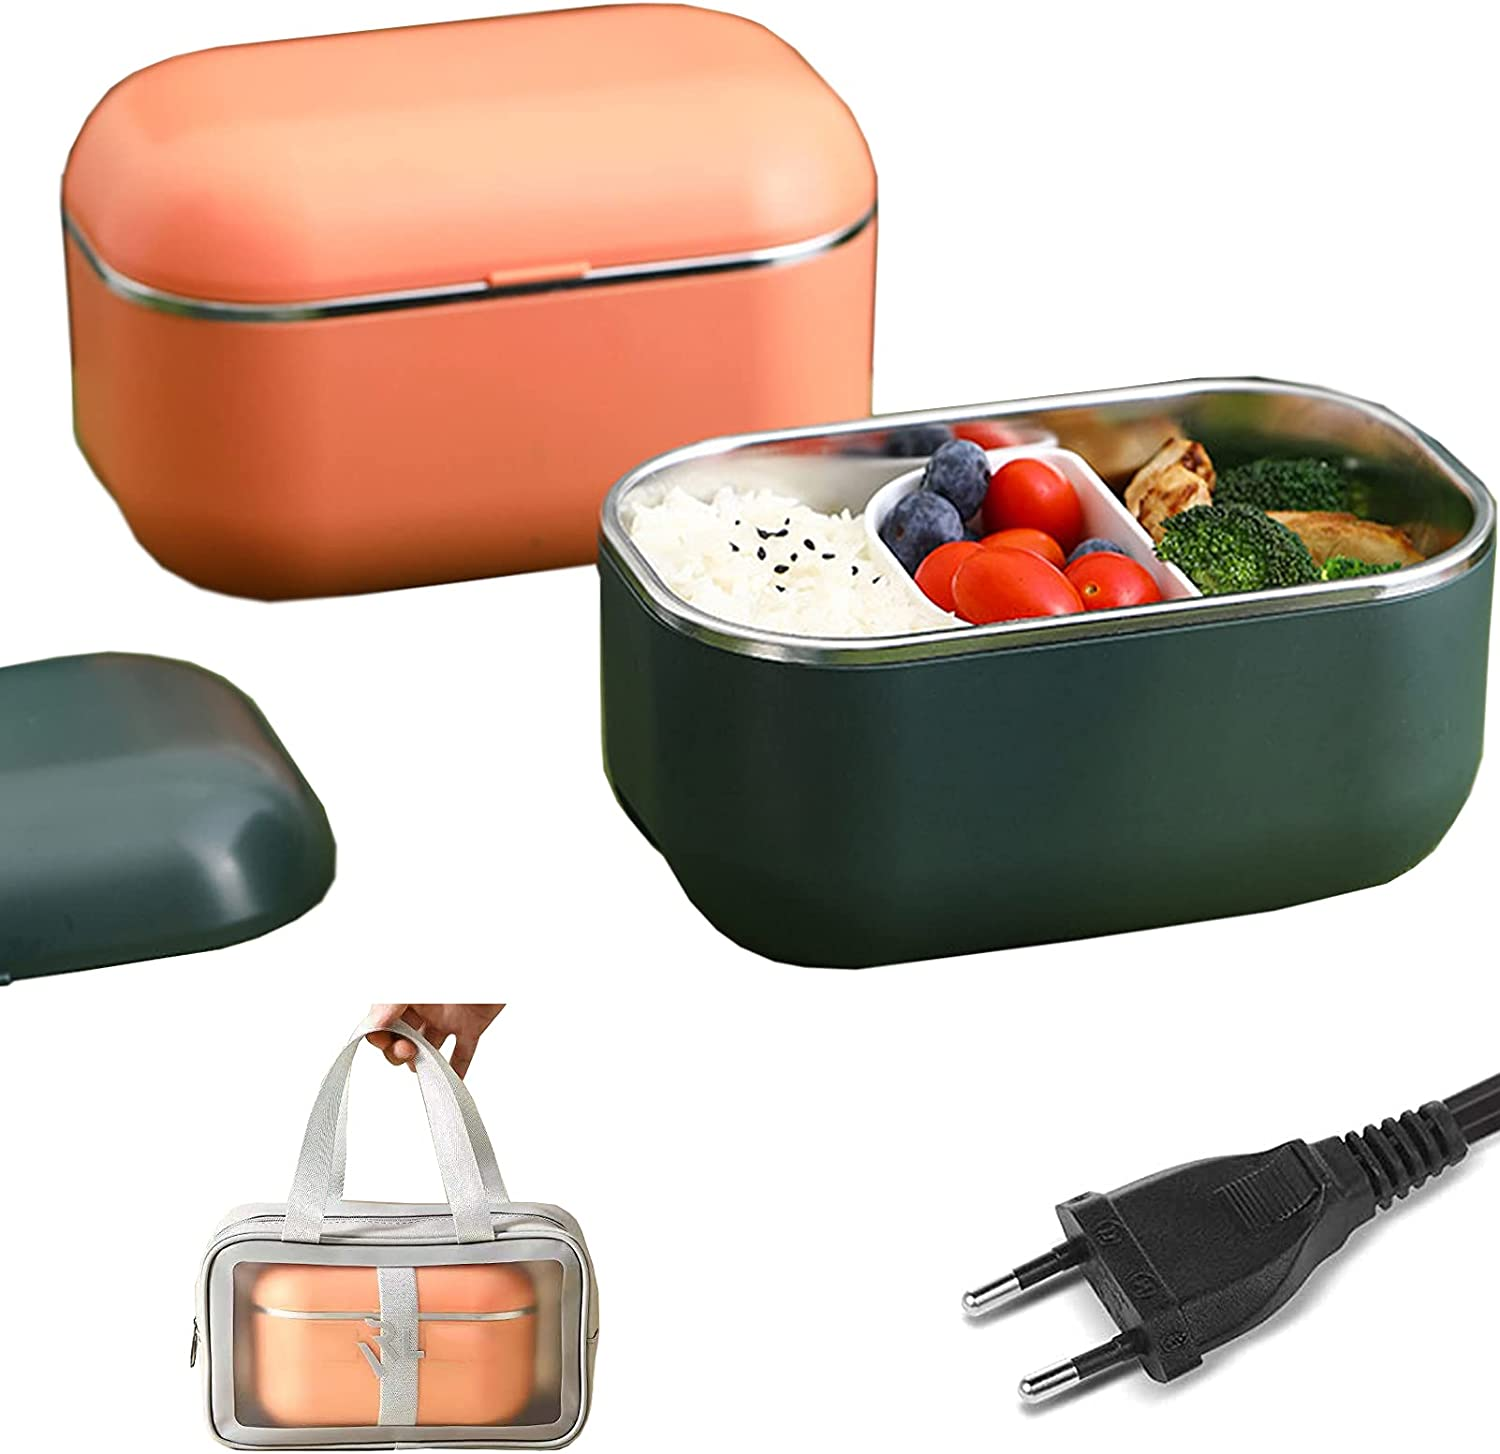 KUMADAI Sales of SALE items Max 42% OFF from new works Bento Lunch Box Electric Home Office for and 1